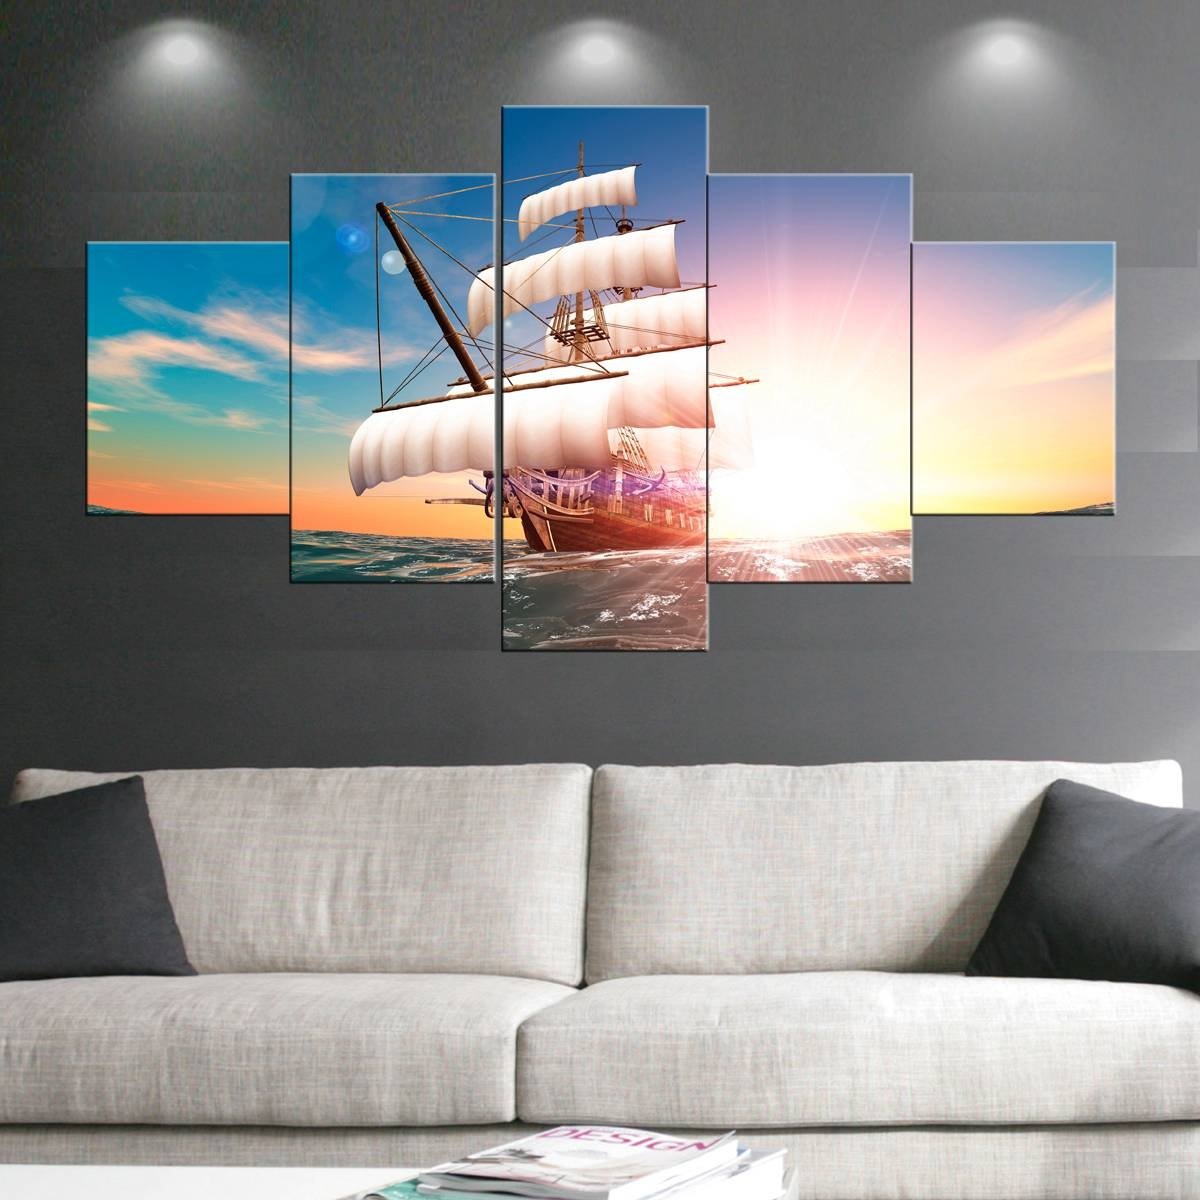 Boat Sail Paintings Wall Art Giclee Canvas Prints Landscape In Best And Newest Art Prints To Hang On Your Wall (View 6 of 15)